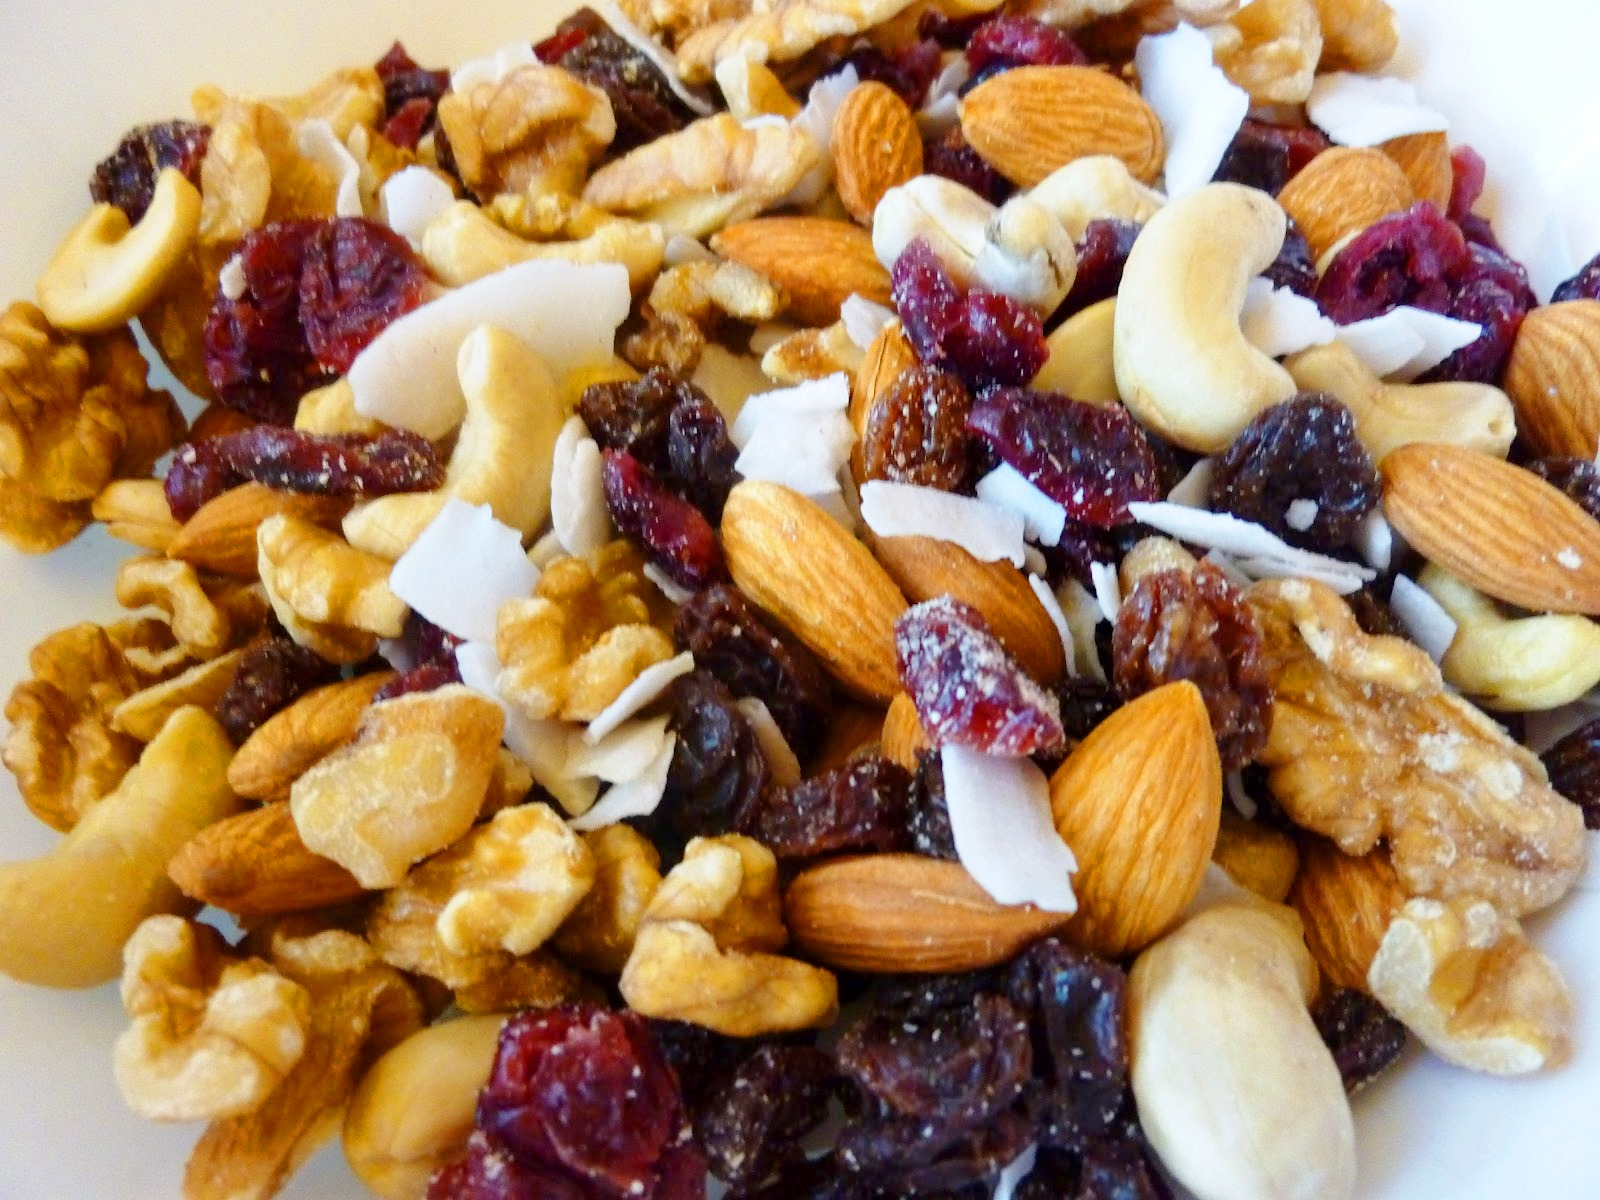 Is Dried Fruit Better Than Raw Fruit